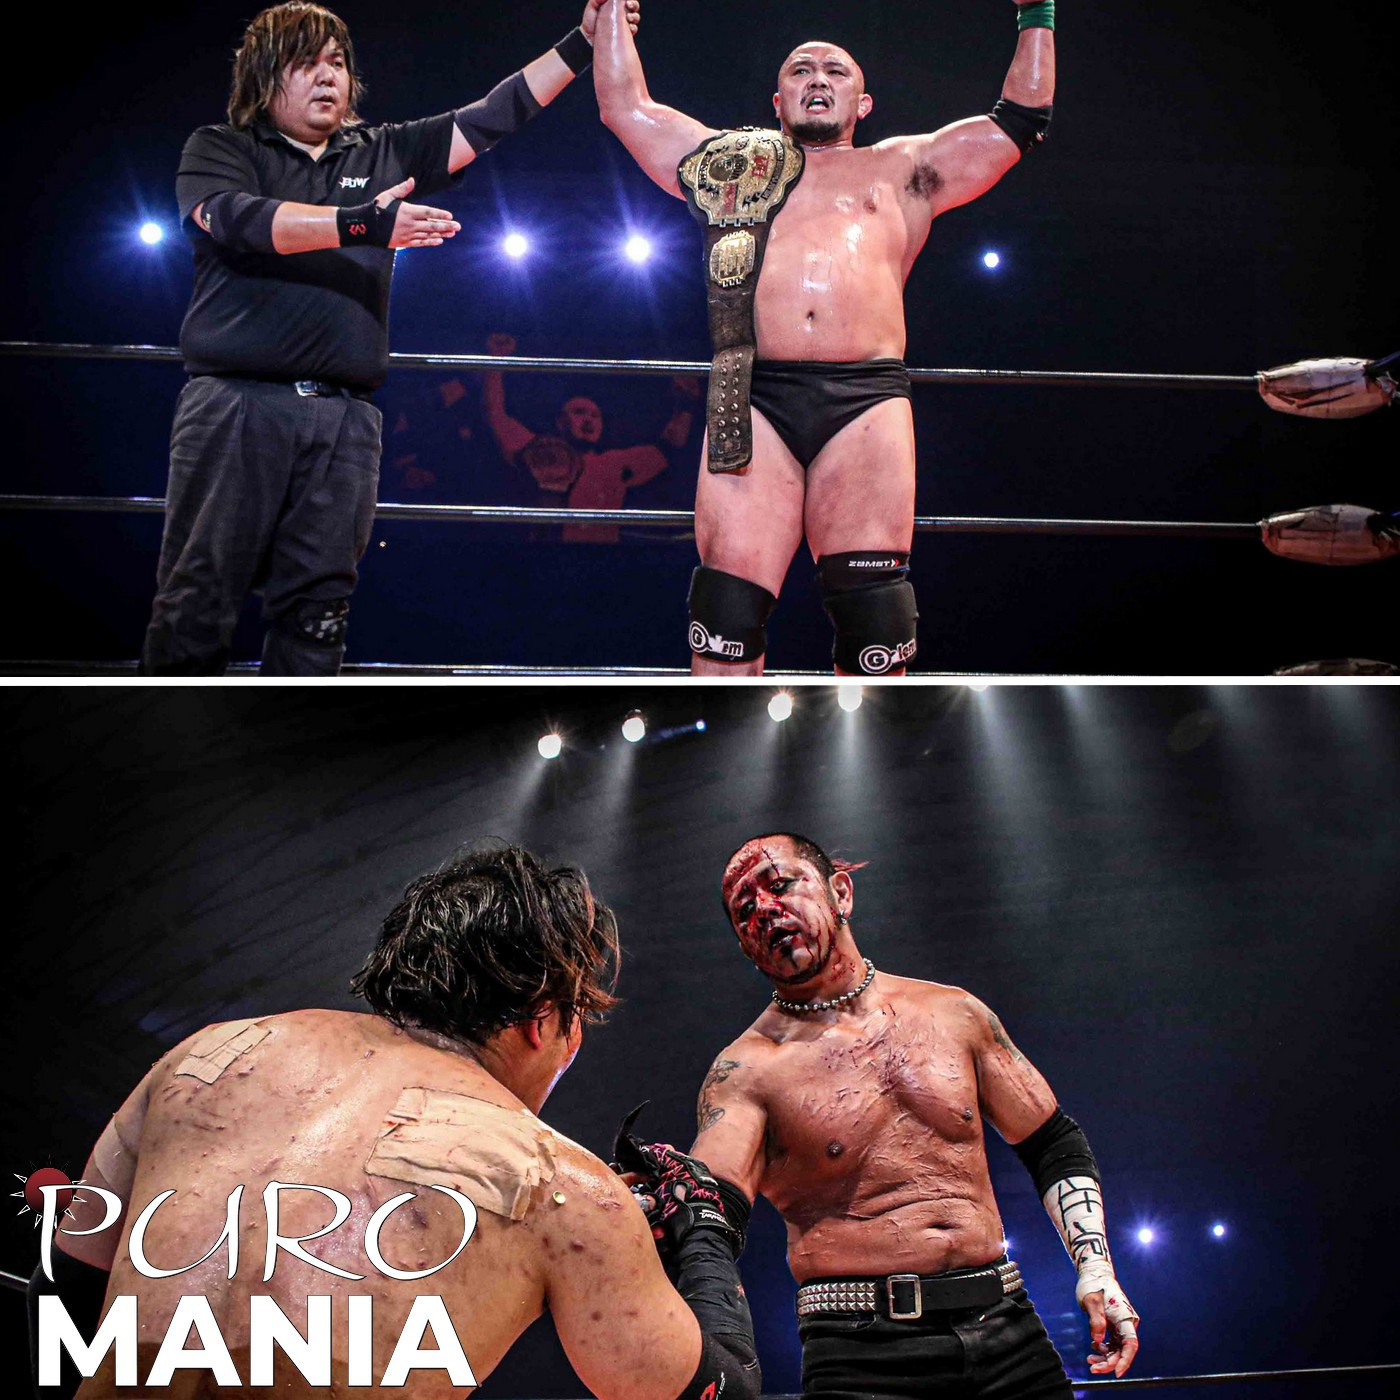 PuroMania #EXTRA : Review BJW ALL BEST MAIN EVENT 2020